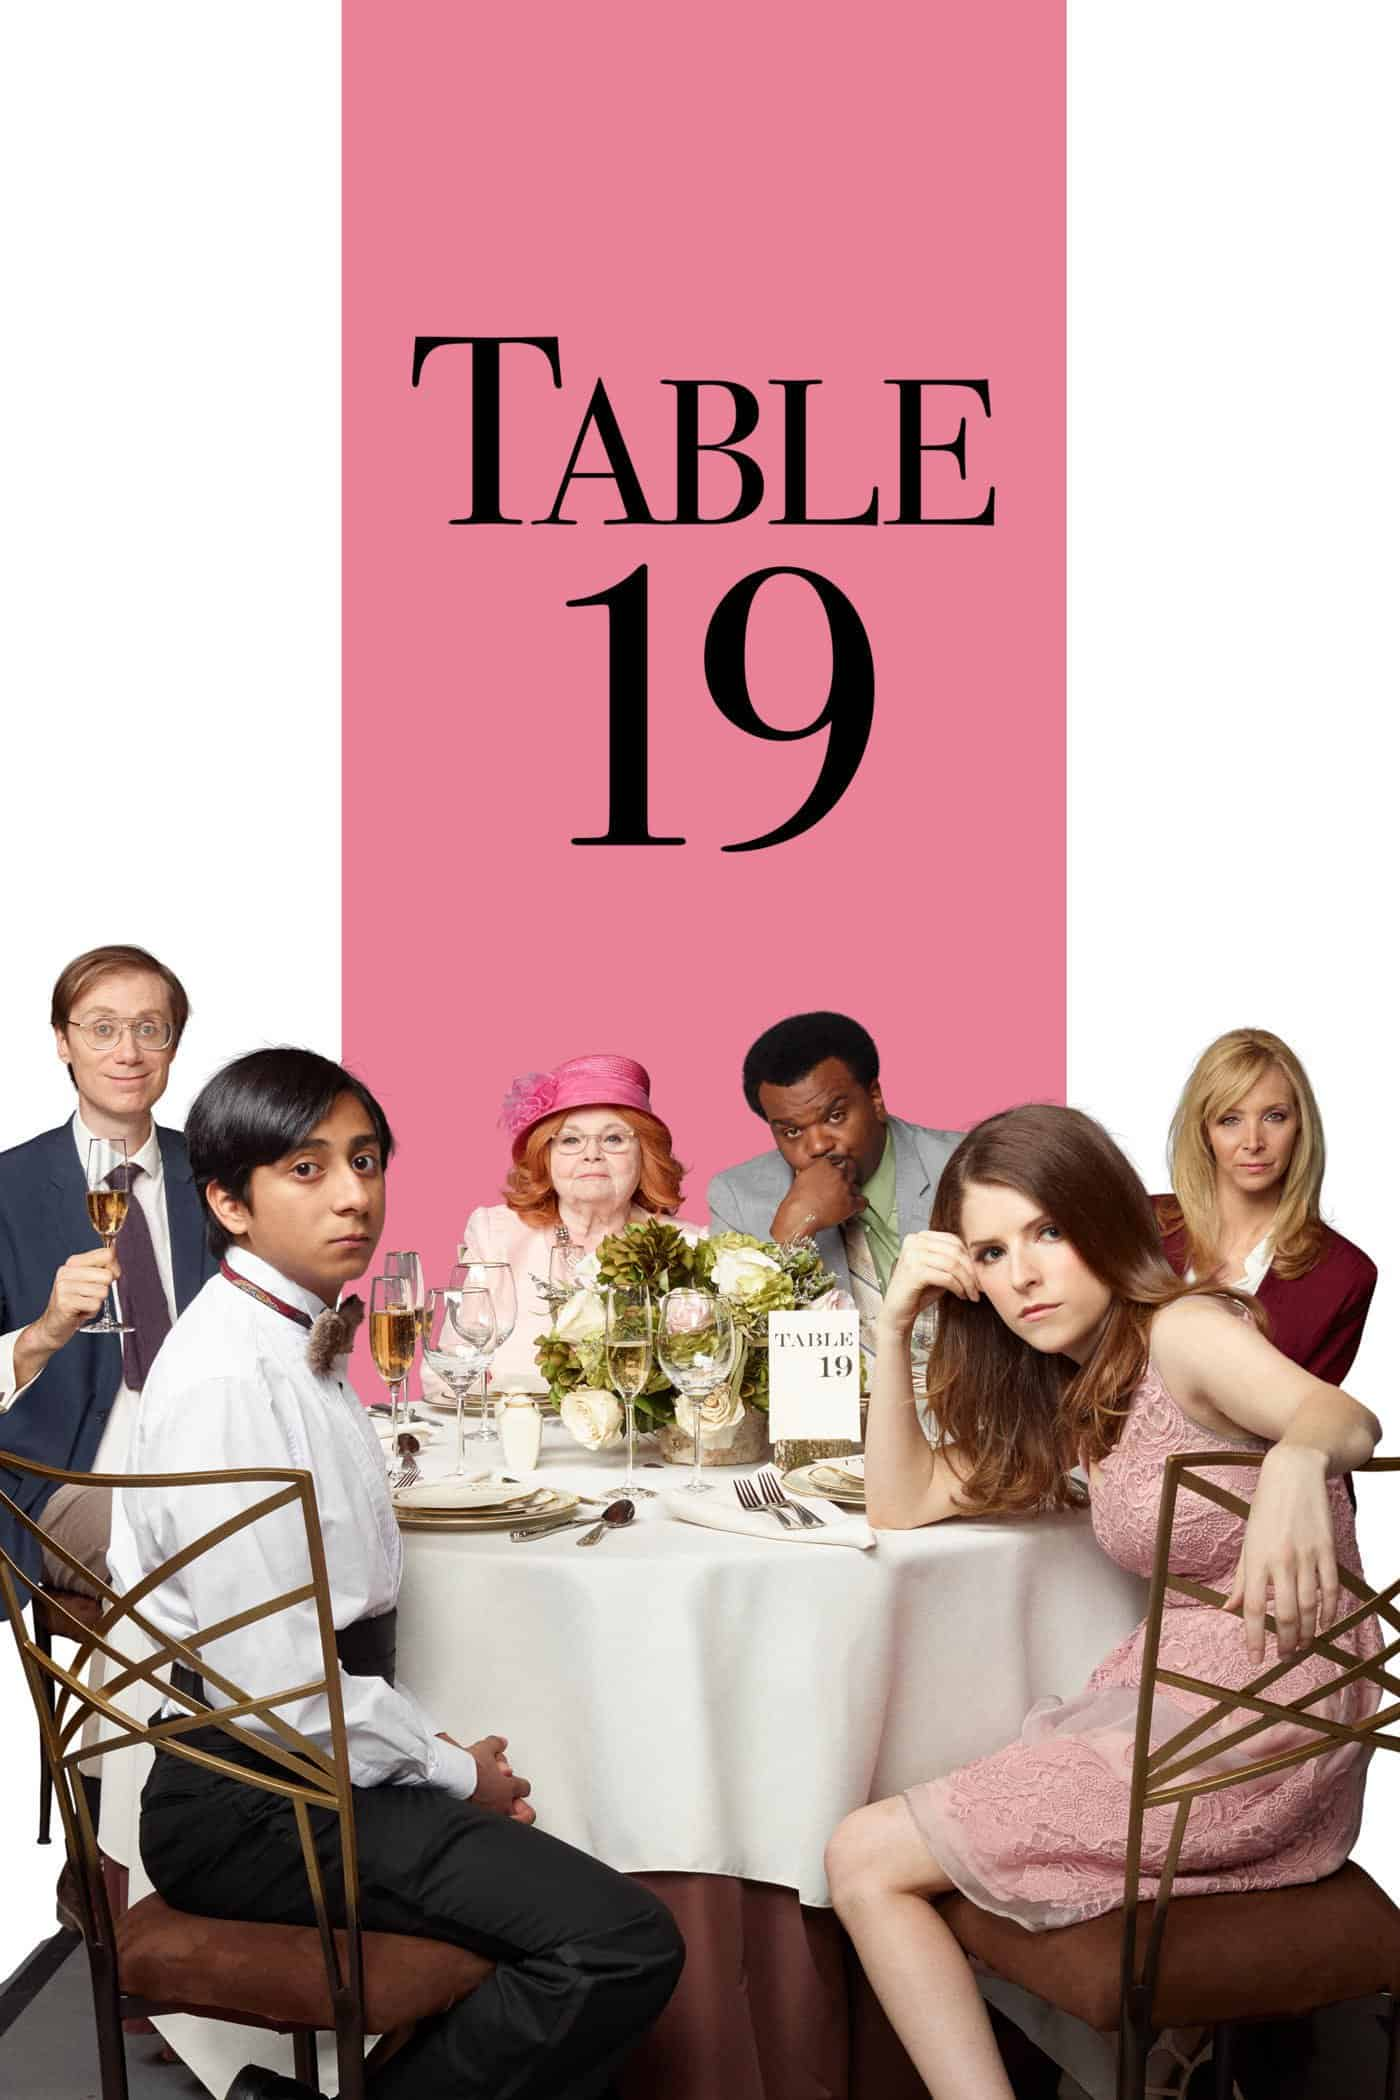 Table 19, 2017